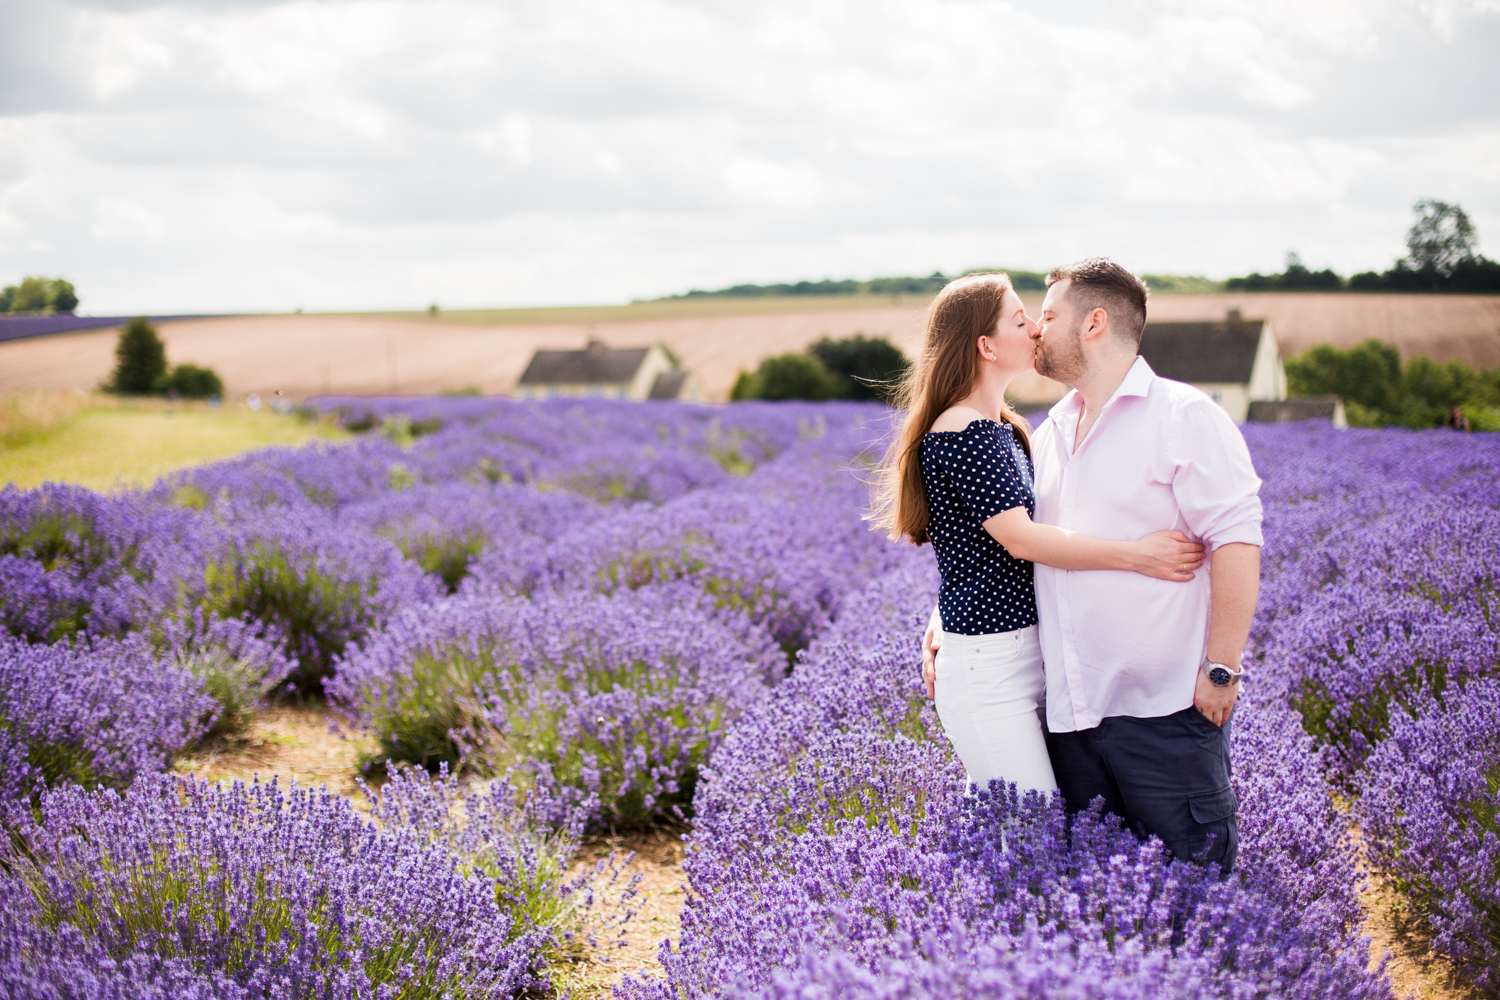 Sophie-Evans-Photograpy-Cotswold-Lavander-Engagement-shoot-Cotswold-wedding-photographer-29.jpg